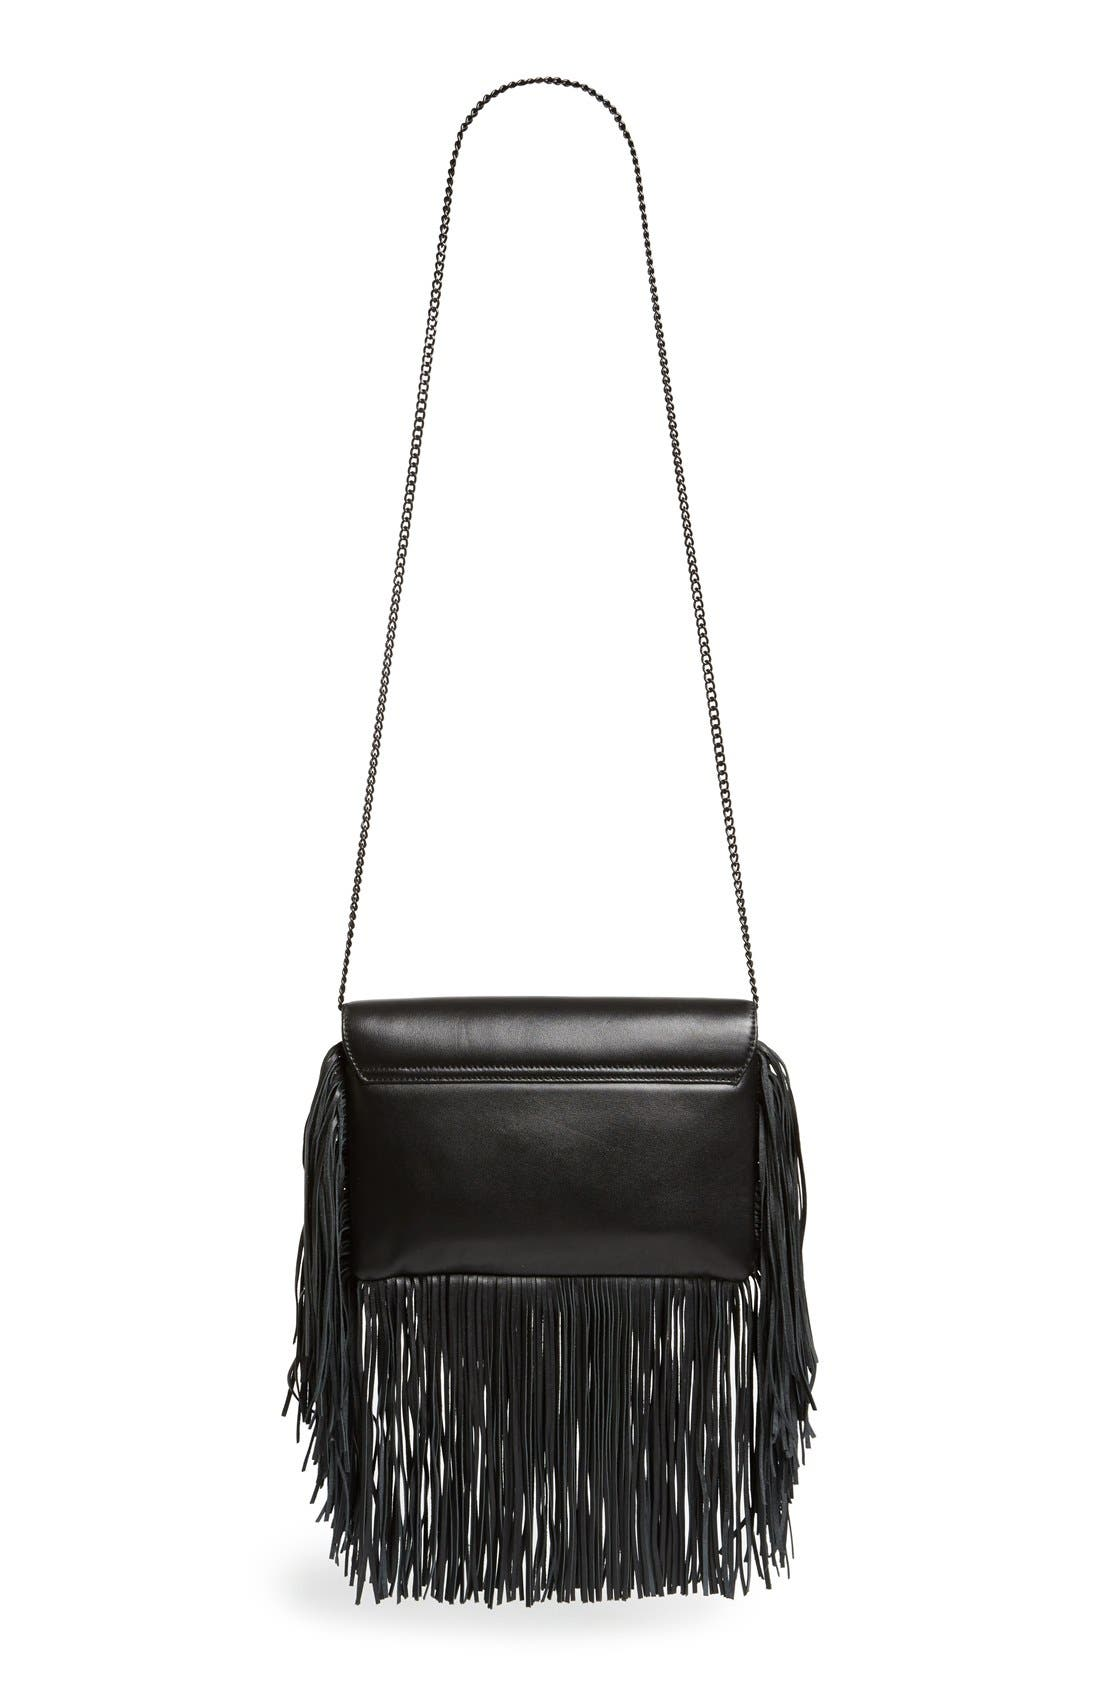 'Lock' Fringe Clutch,                             Alternate thumbnail 4, color,                             001